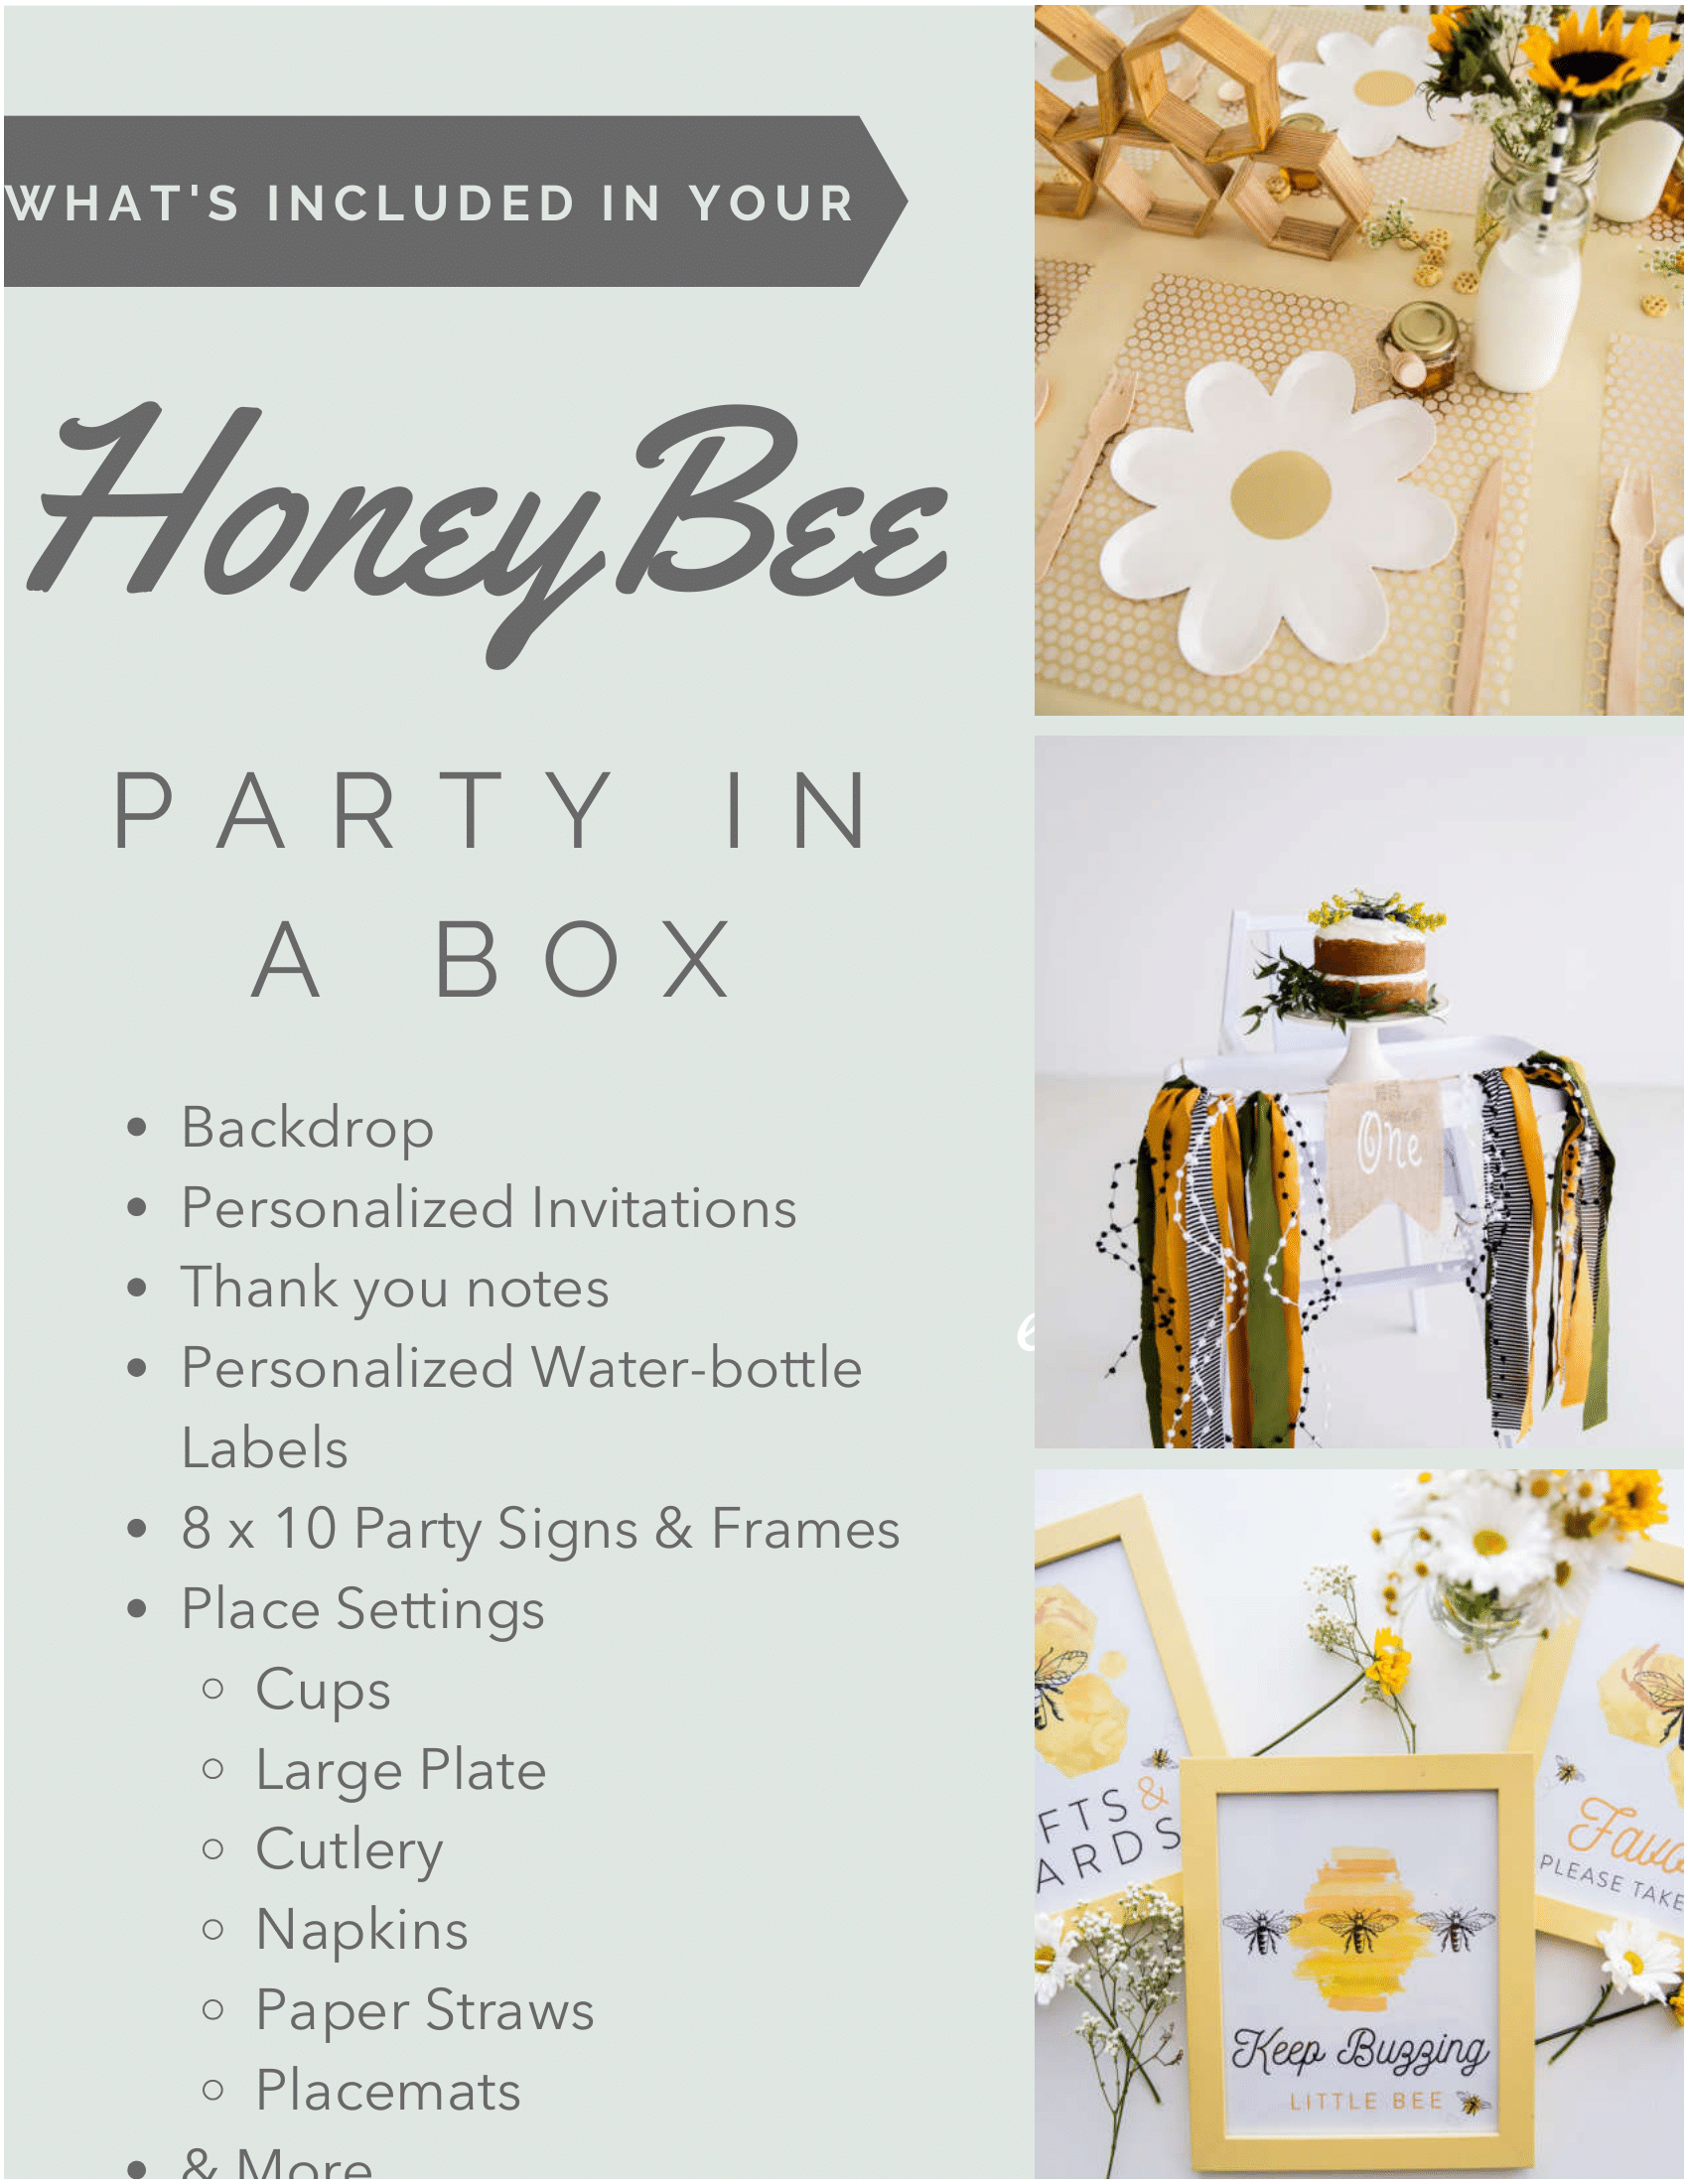 Whats Included - Honey Bee